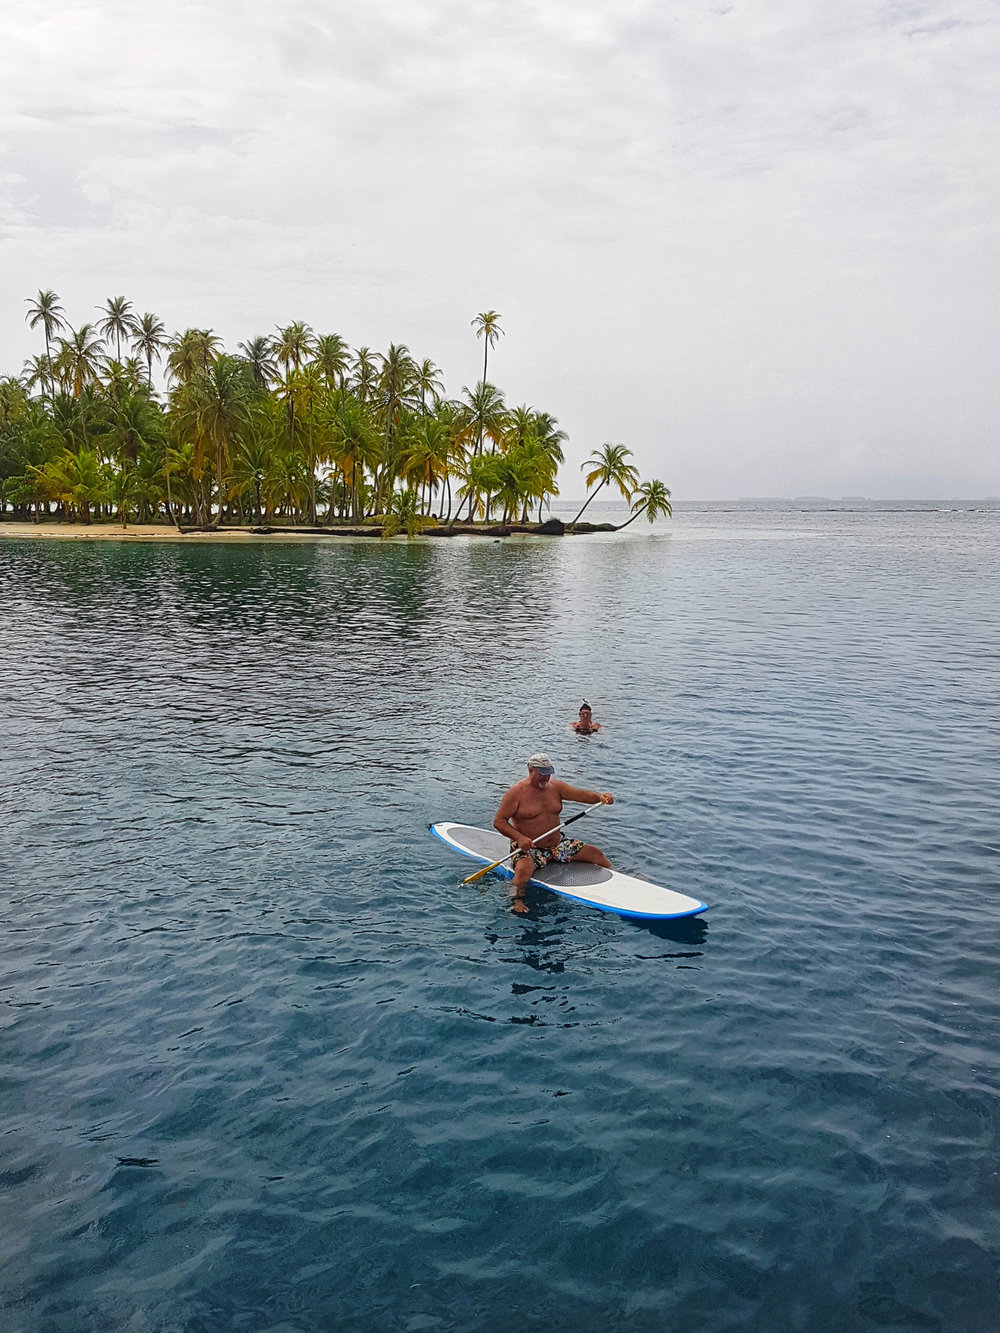 paddleboarding_snorkling_uwe_joan_photo_claudiab.jpg